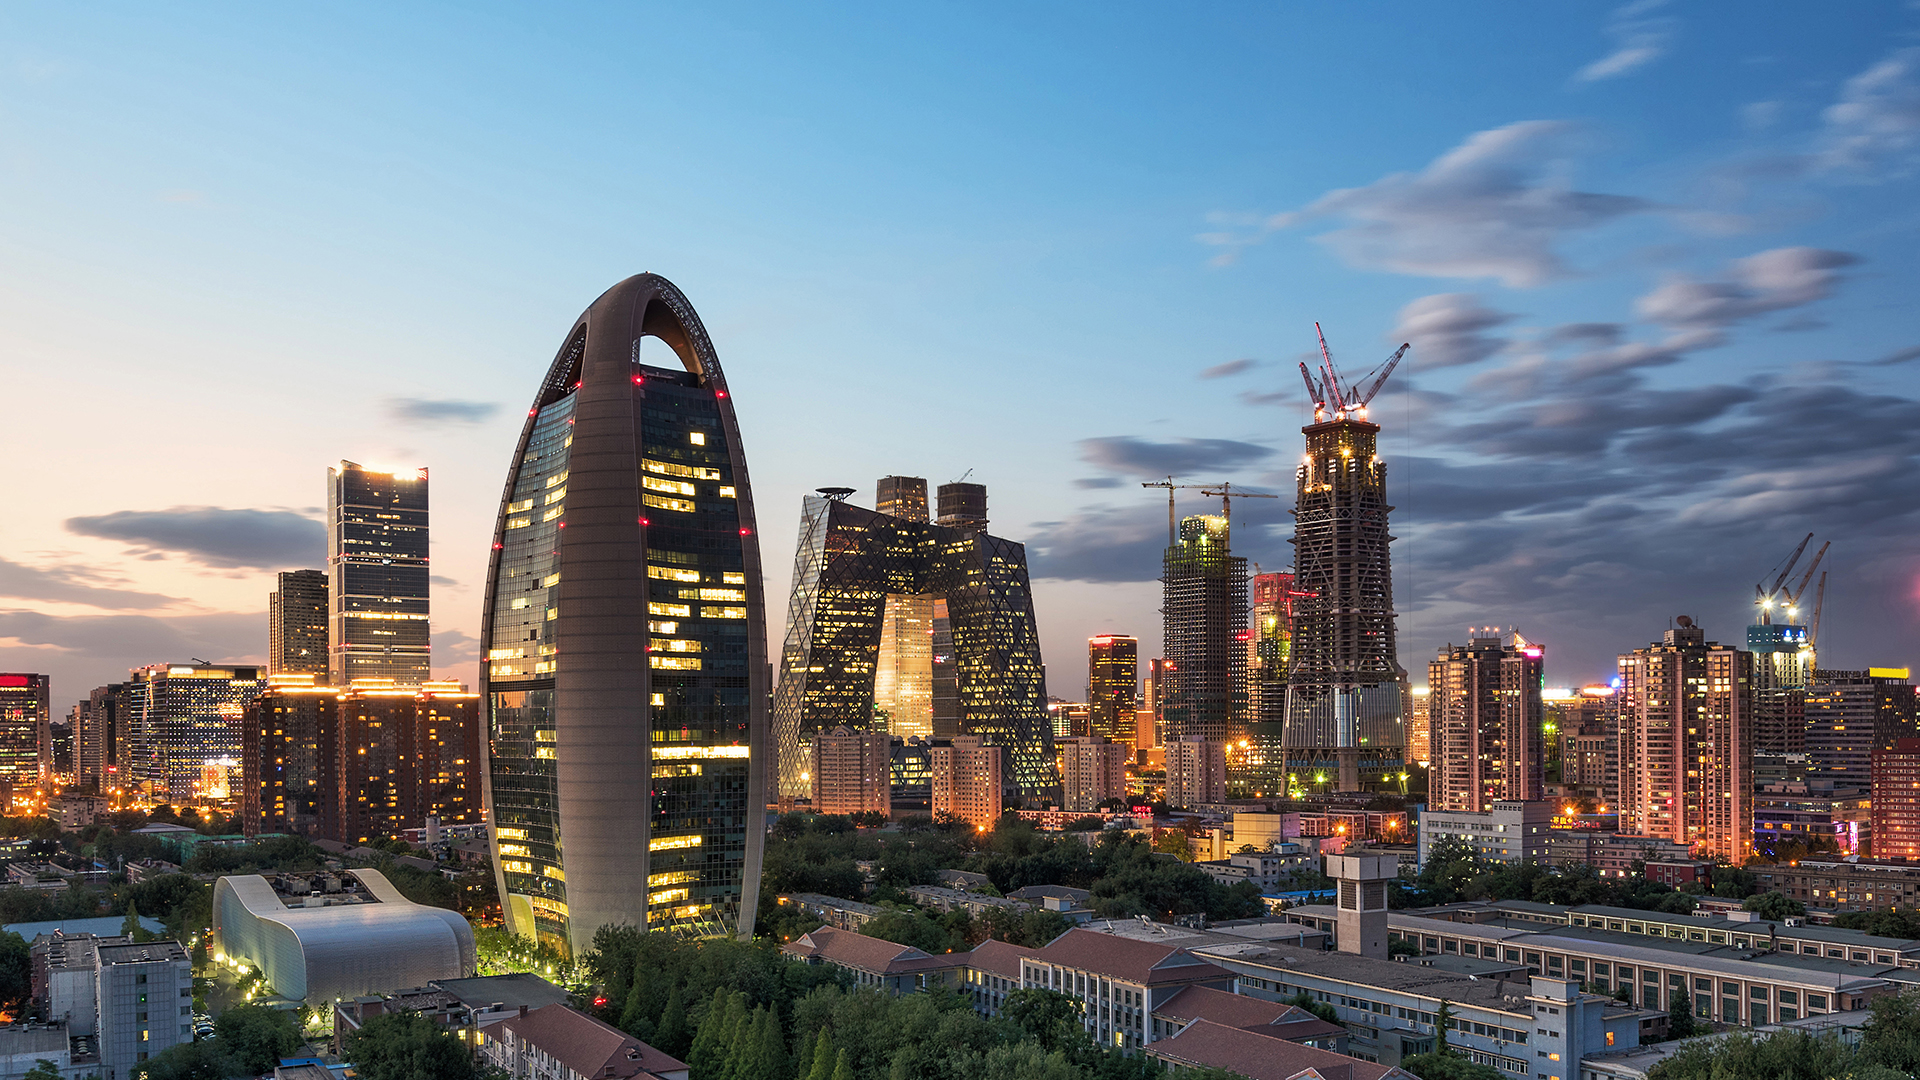 China's nationwide carbon trading officially starts at the Shanghai Environment & Energy Exchange on 16 July, 2021